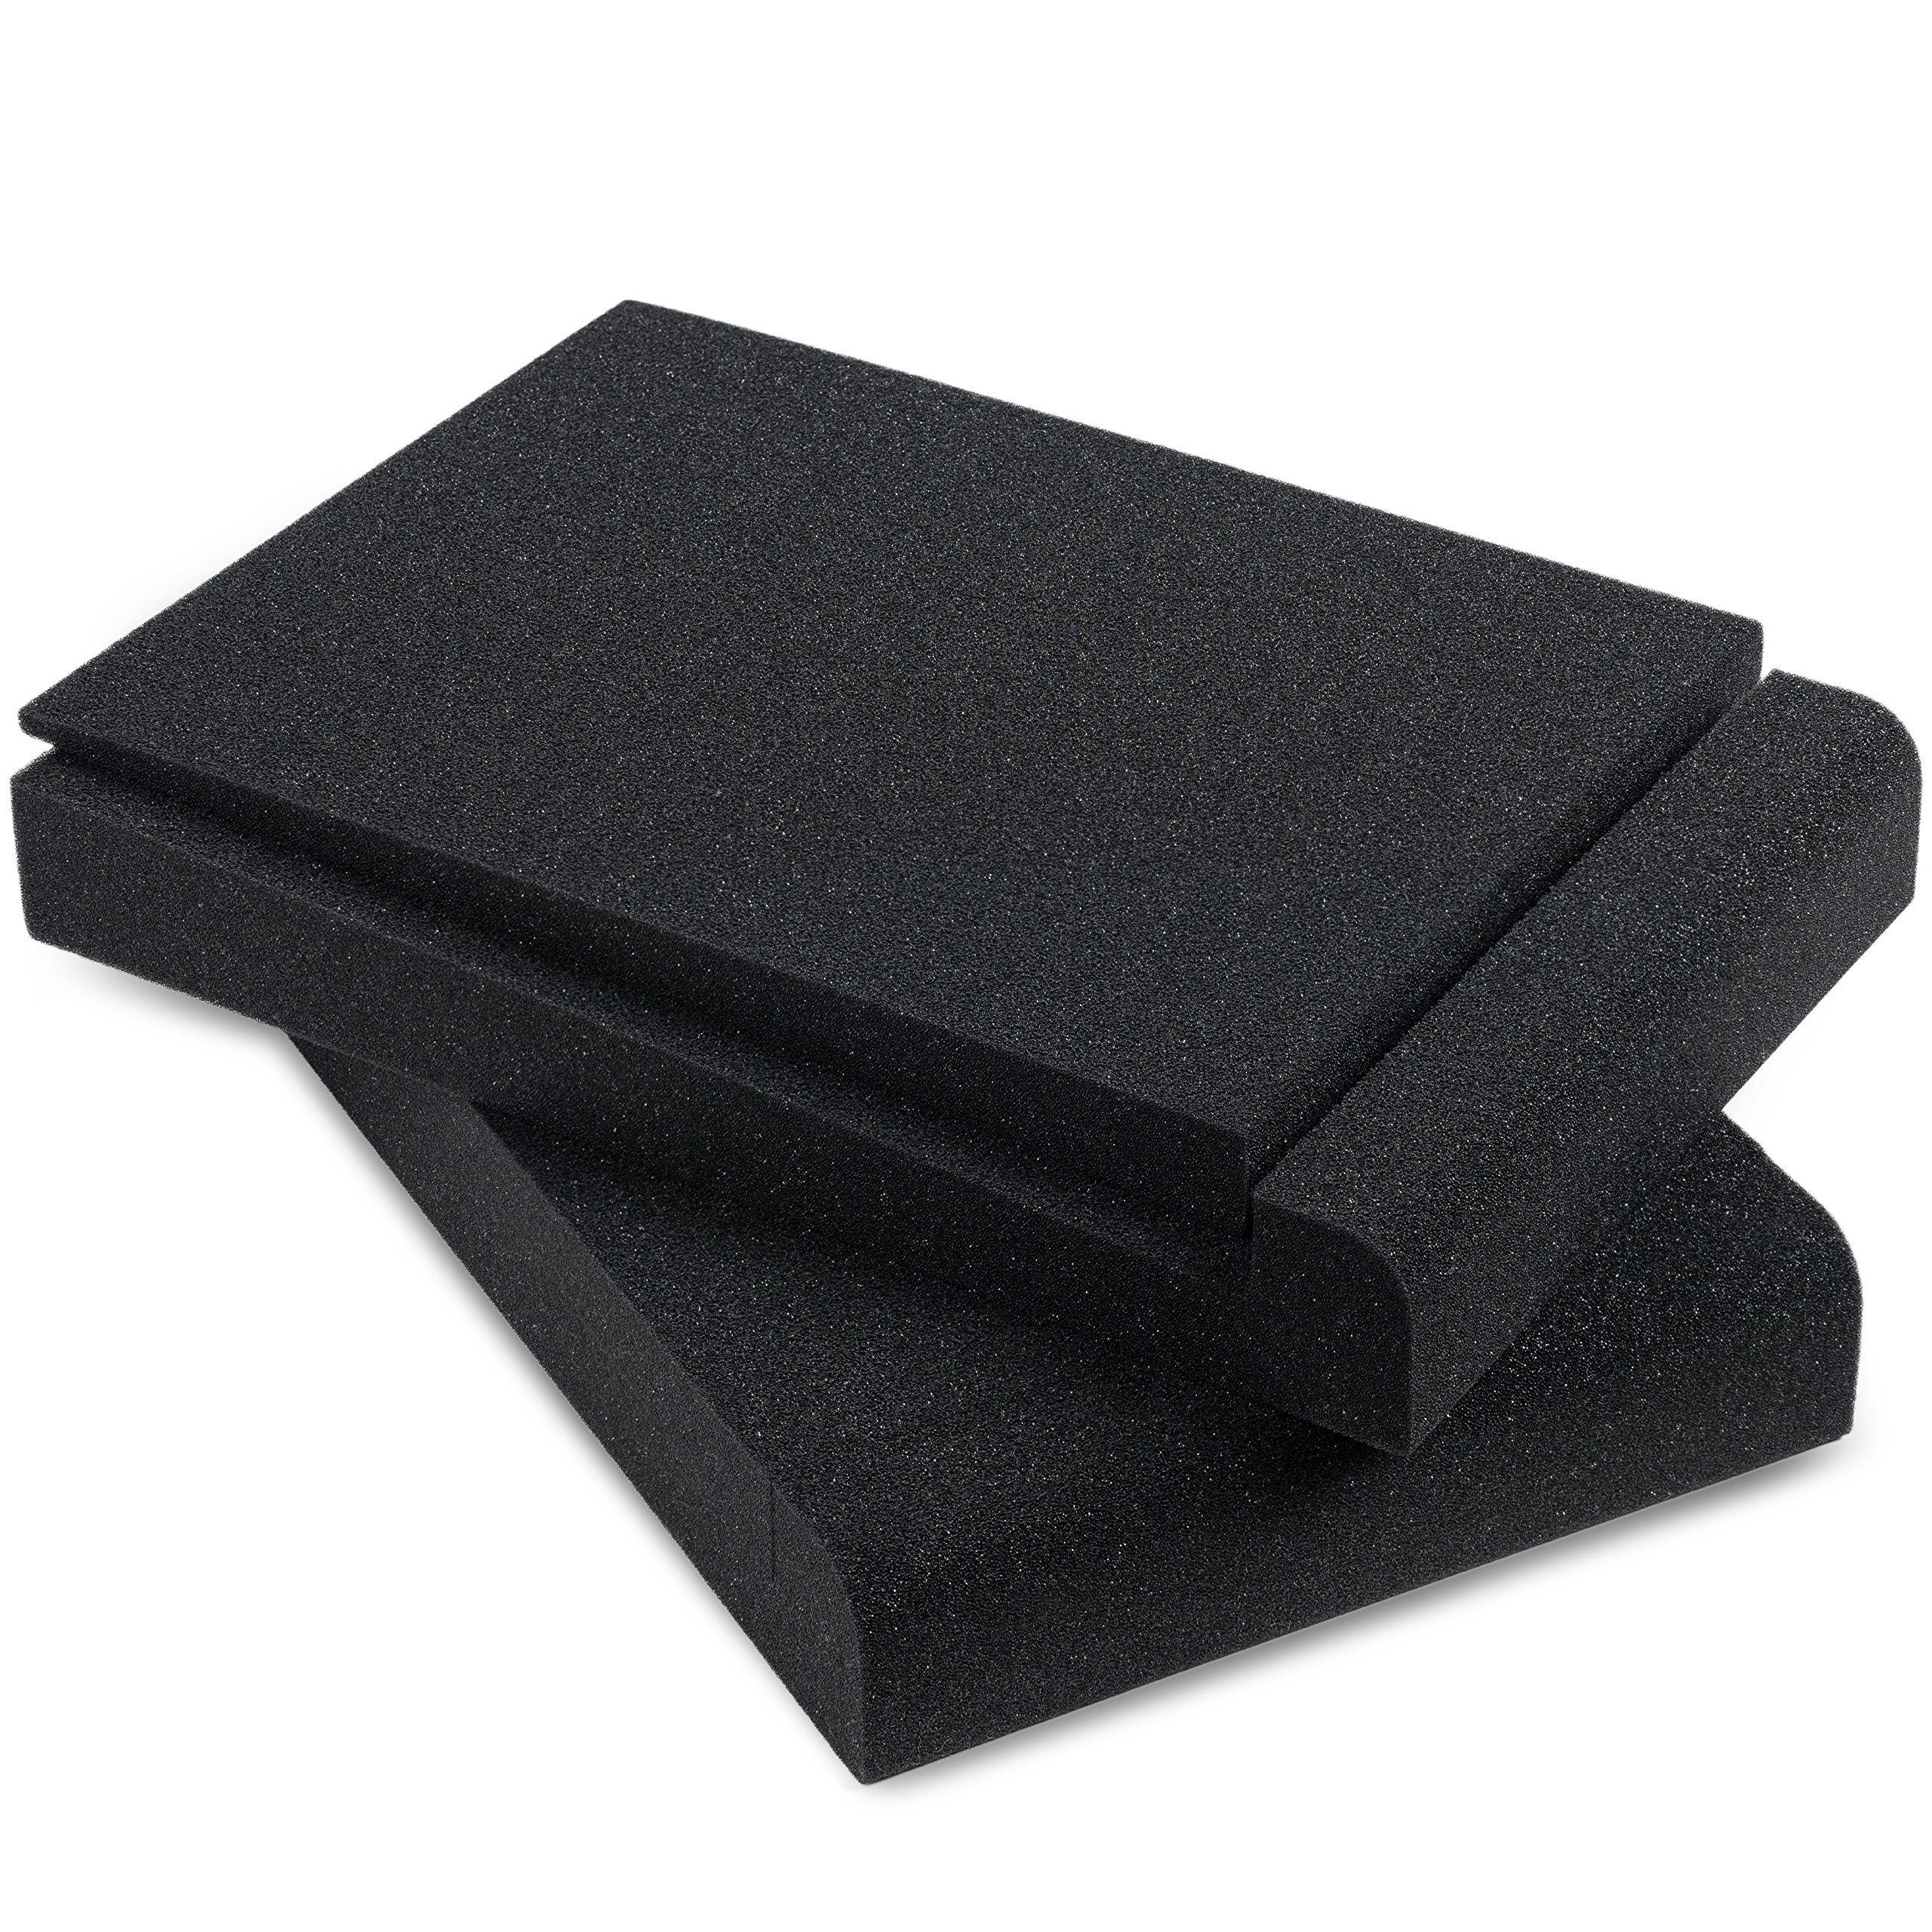 Sound Addicted - Studio Monitor Isolation Pads for 5'' Inch Monitors, Pair of Two High Density Acoustic Foam which Fits most Speaker Stands | SMPad 5 by Sound Addicted (Image #1)